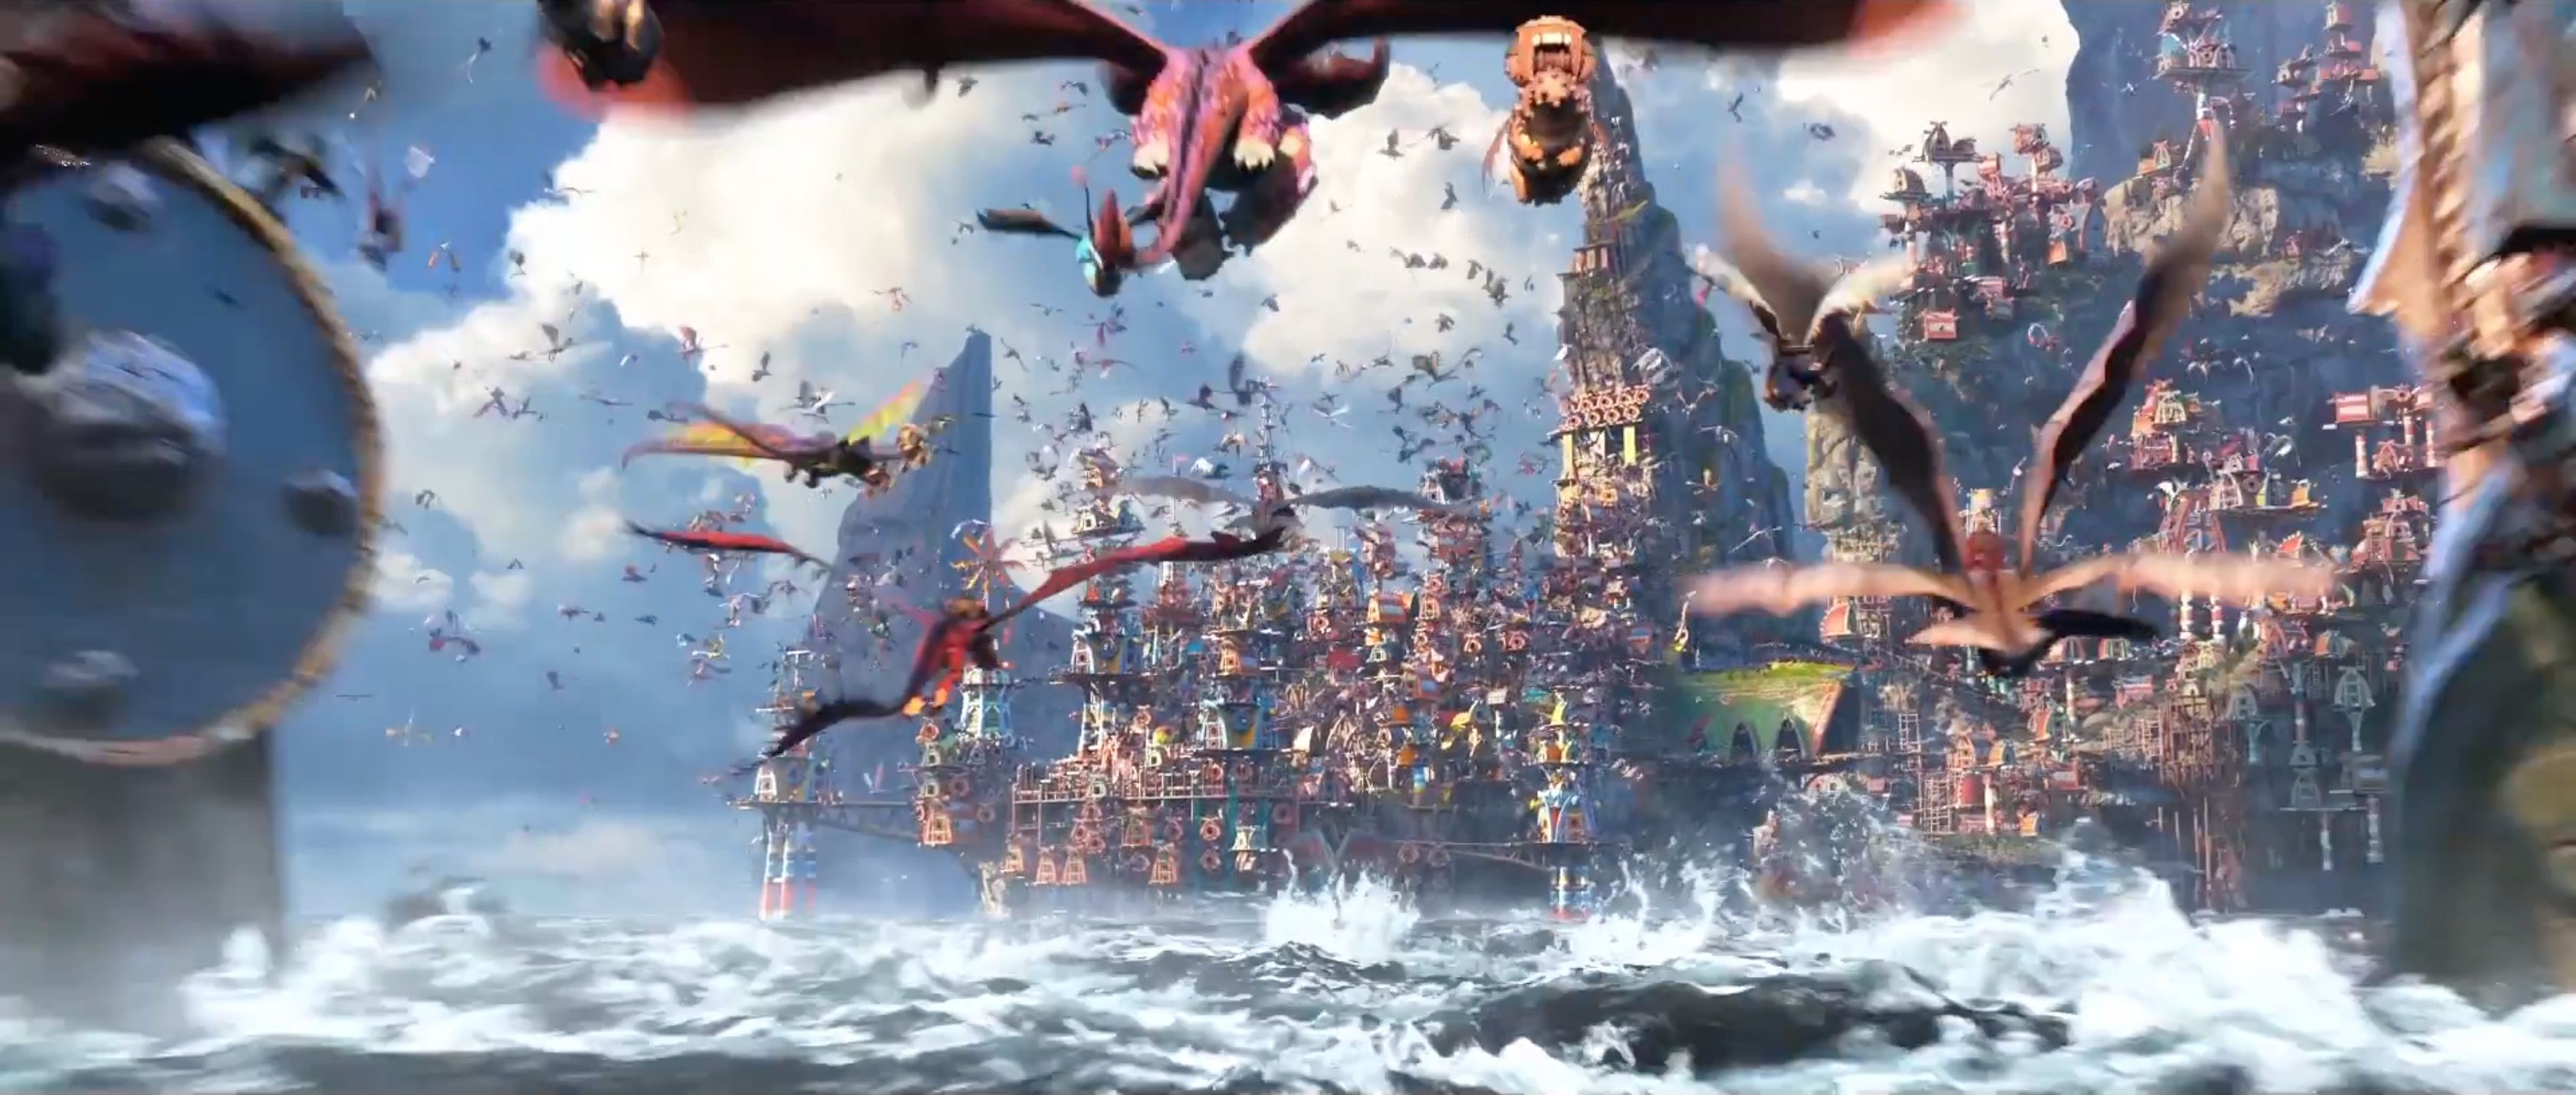 How To Train Your Dragon The Hidden World 2019 Photo How Train Your Dragon How To Train Your Dragon How To Train Your